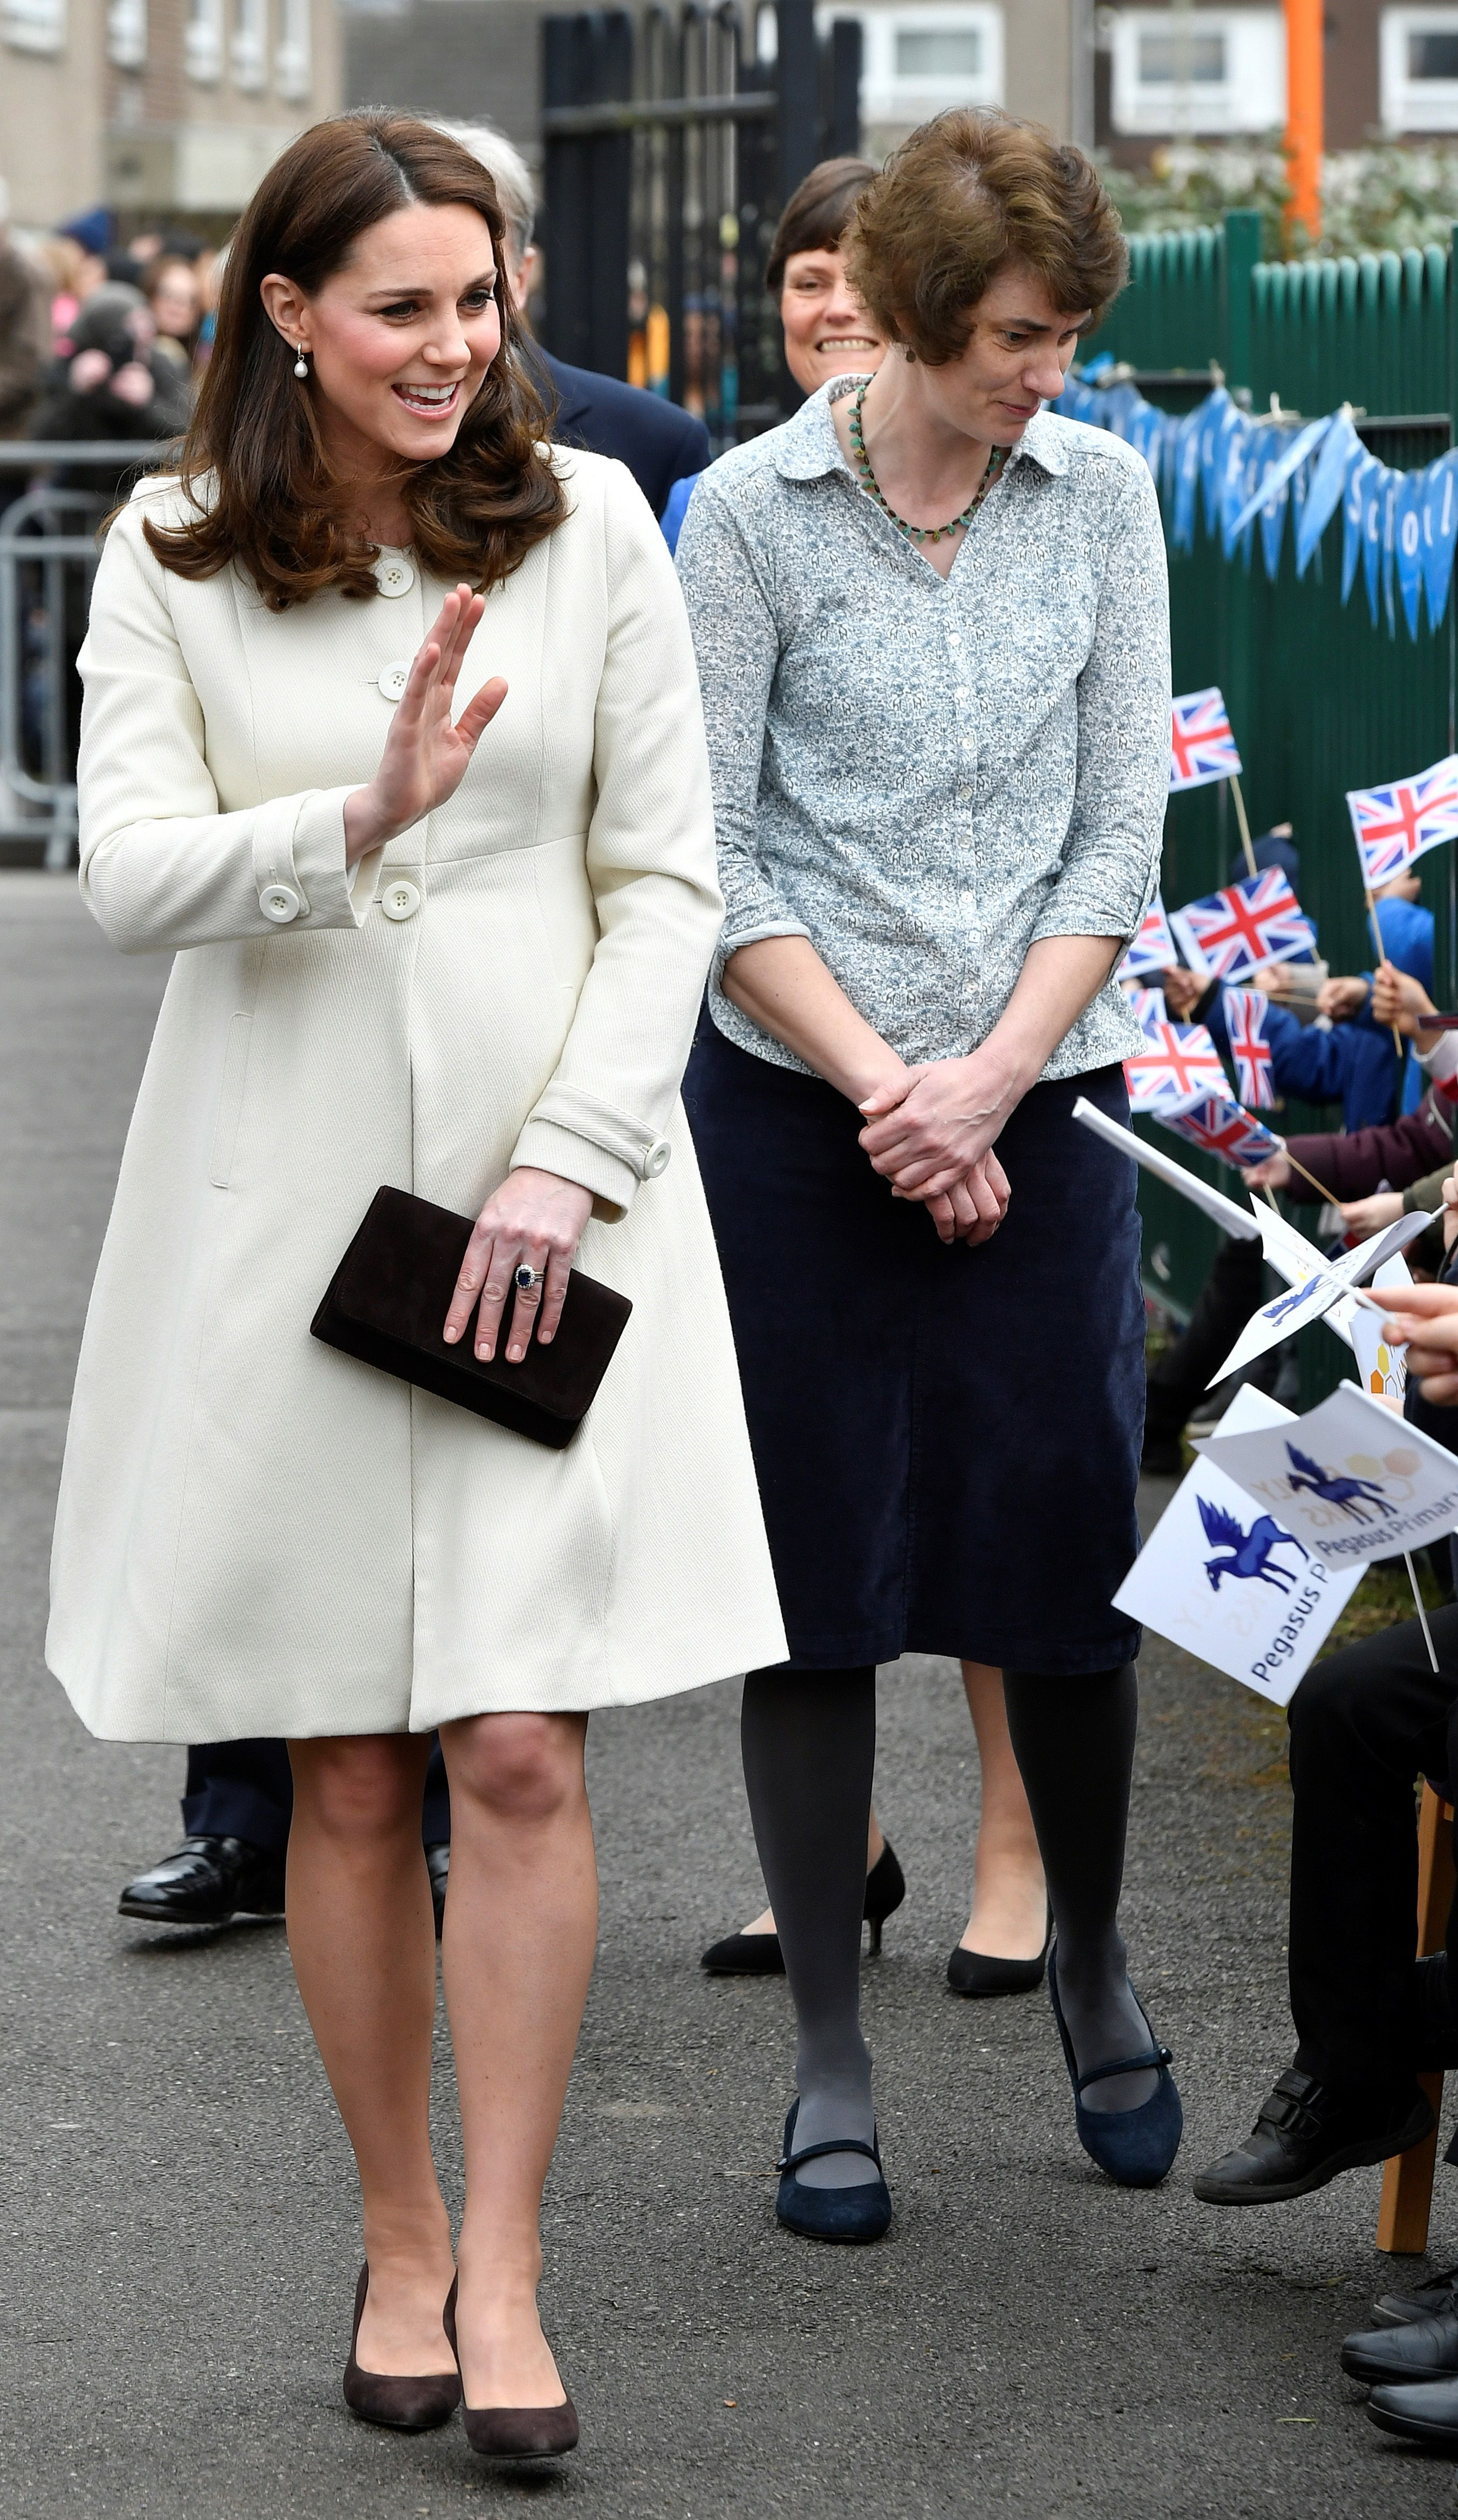 08e856cf6 Kate Middleton's Best Style Moments - The Duchess of Cambridge's Most  Fashionable Outfits